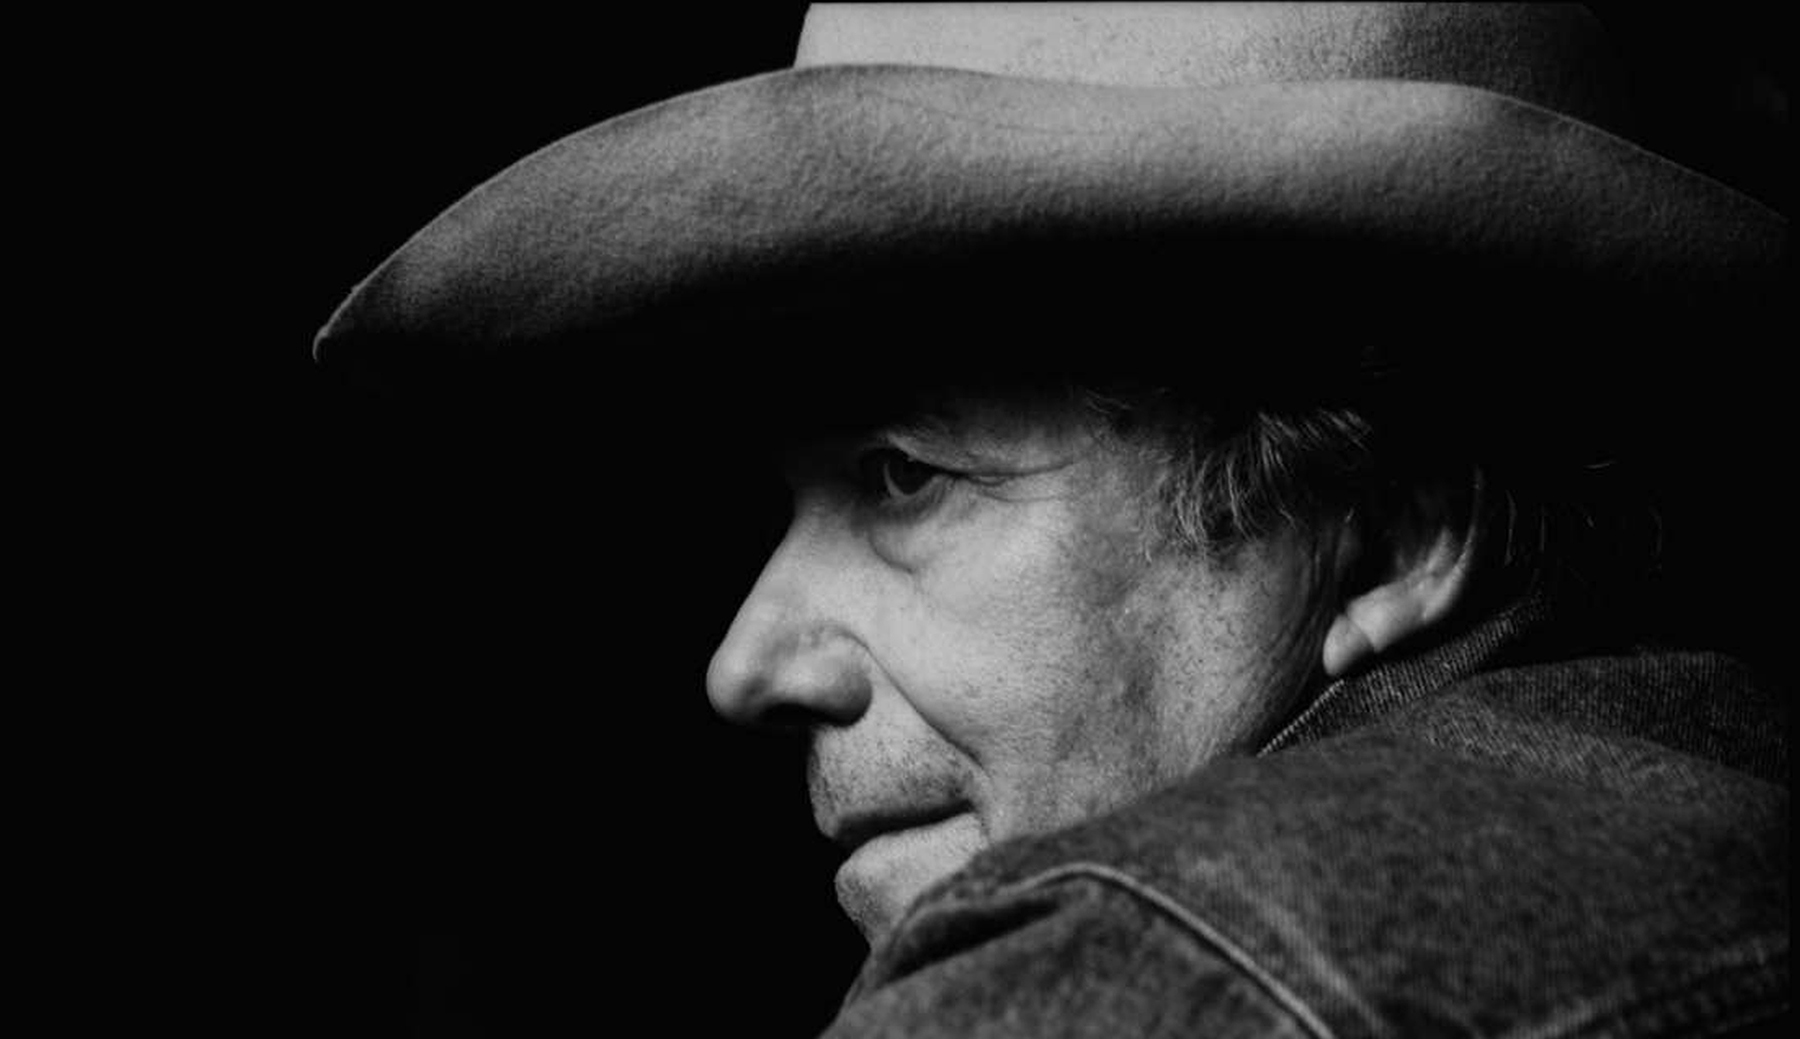 Bobby Bare to Release Lost Album of Shel Silverstein Songs 'Great American Saturday Night'